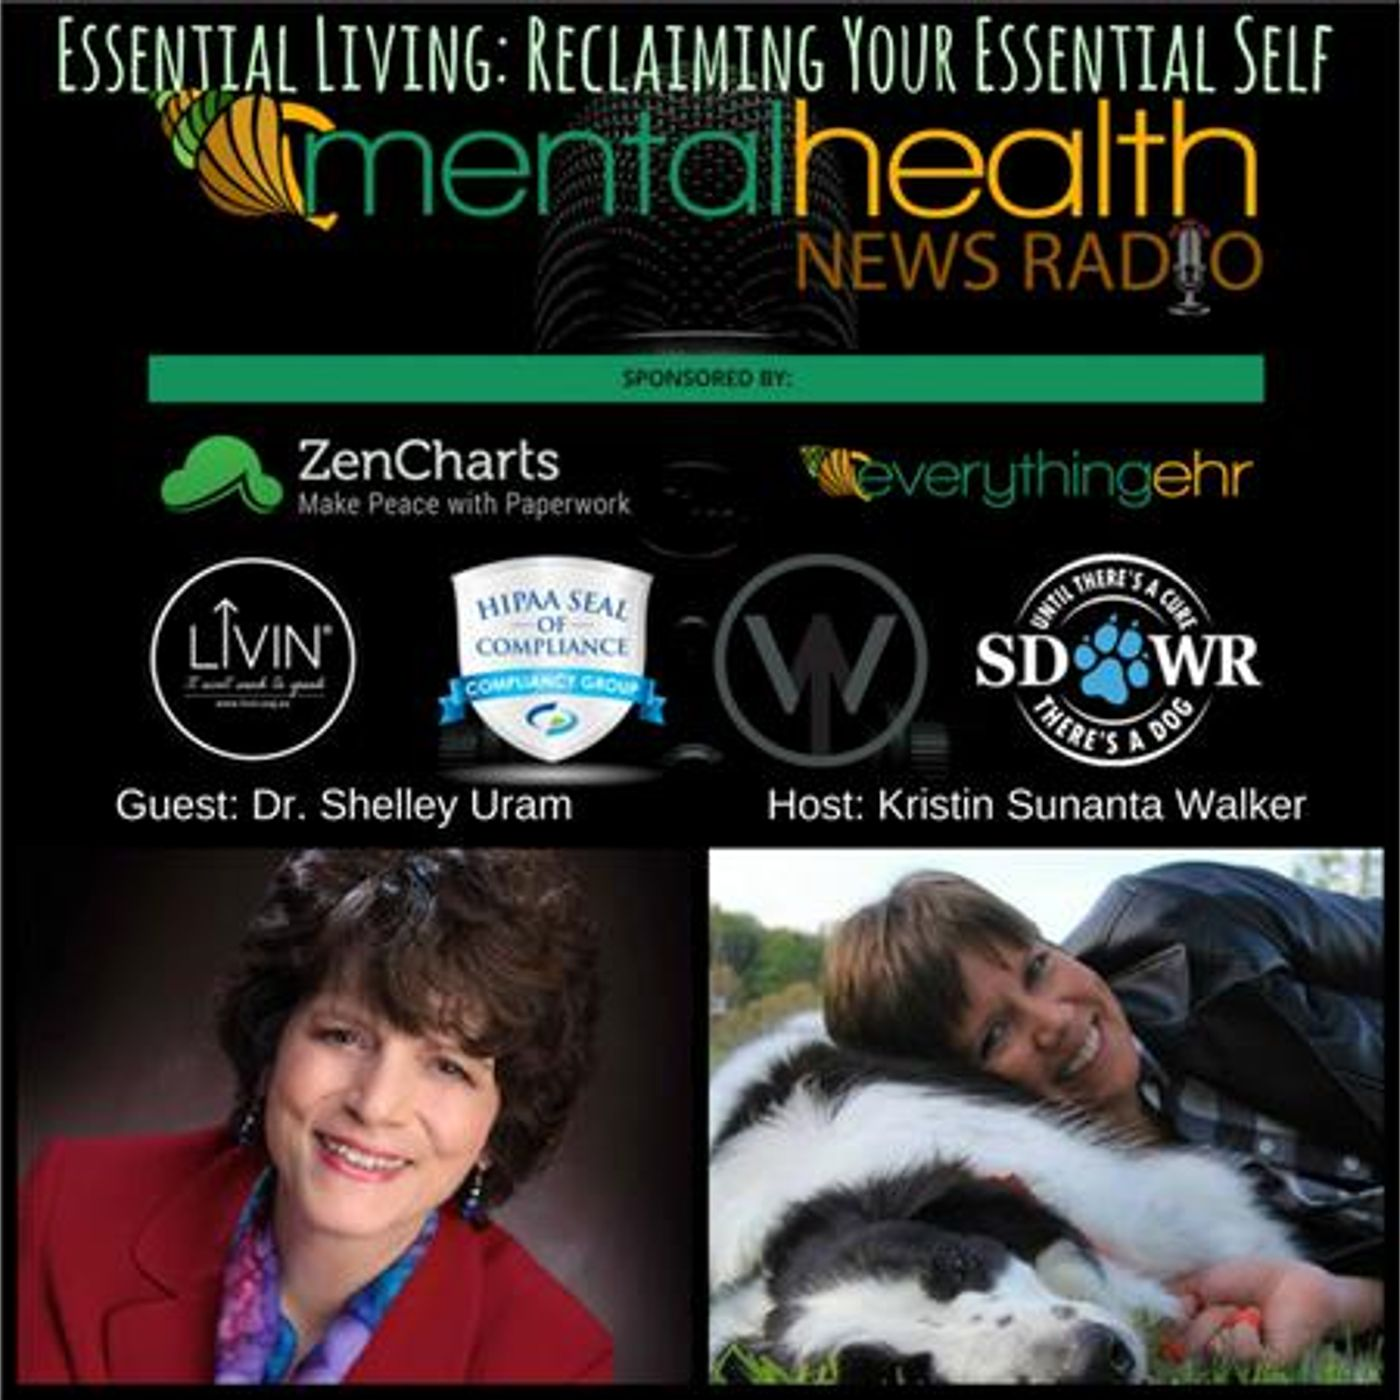 Mental Health News Radio - Essential Living: Reclaiming Your Essential Self With Dr. Shelley Uram